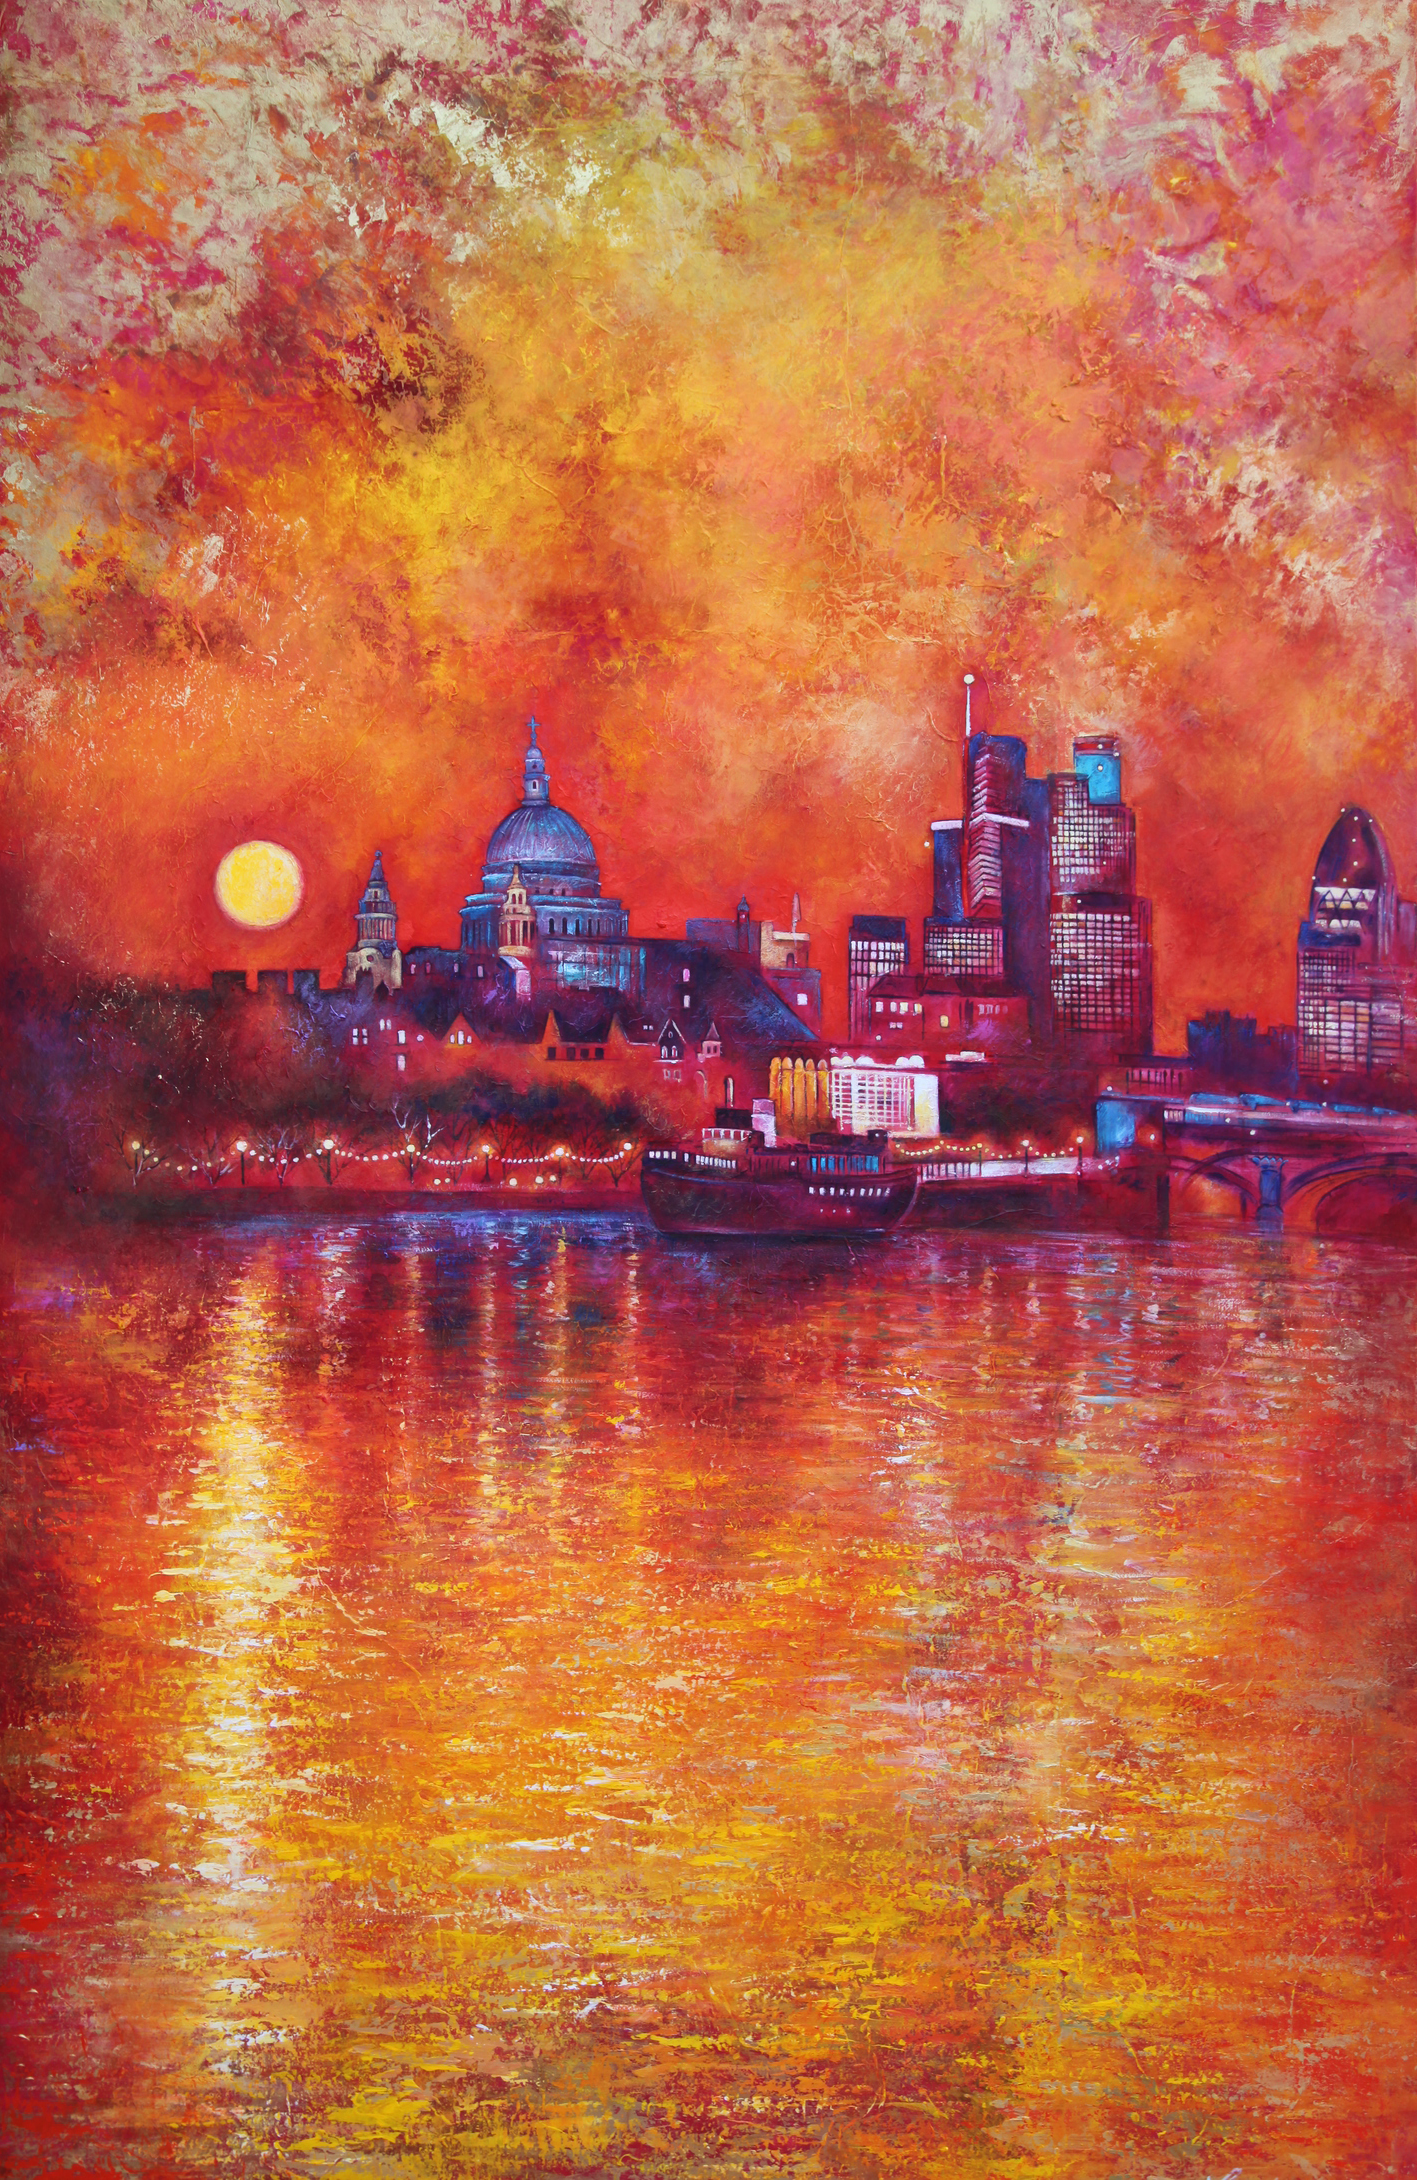 Over the years, Louise has taken on increasingly more ambitious commissions, including a triptic (series of 3 paintings) of the view from the Richmond hill terrace in South West London, and a 2 metre x 1.6 metre boxed canvas of St Paul's Cathedral and River Thames in London.